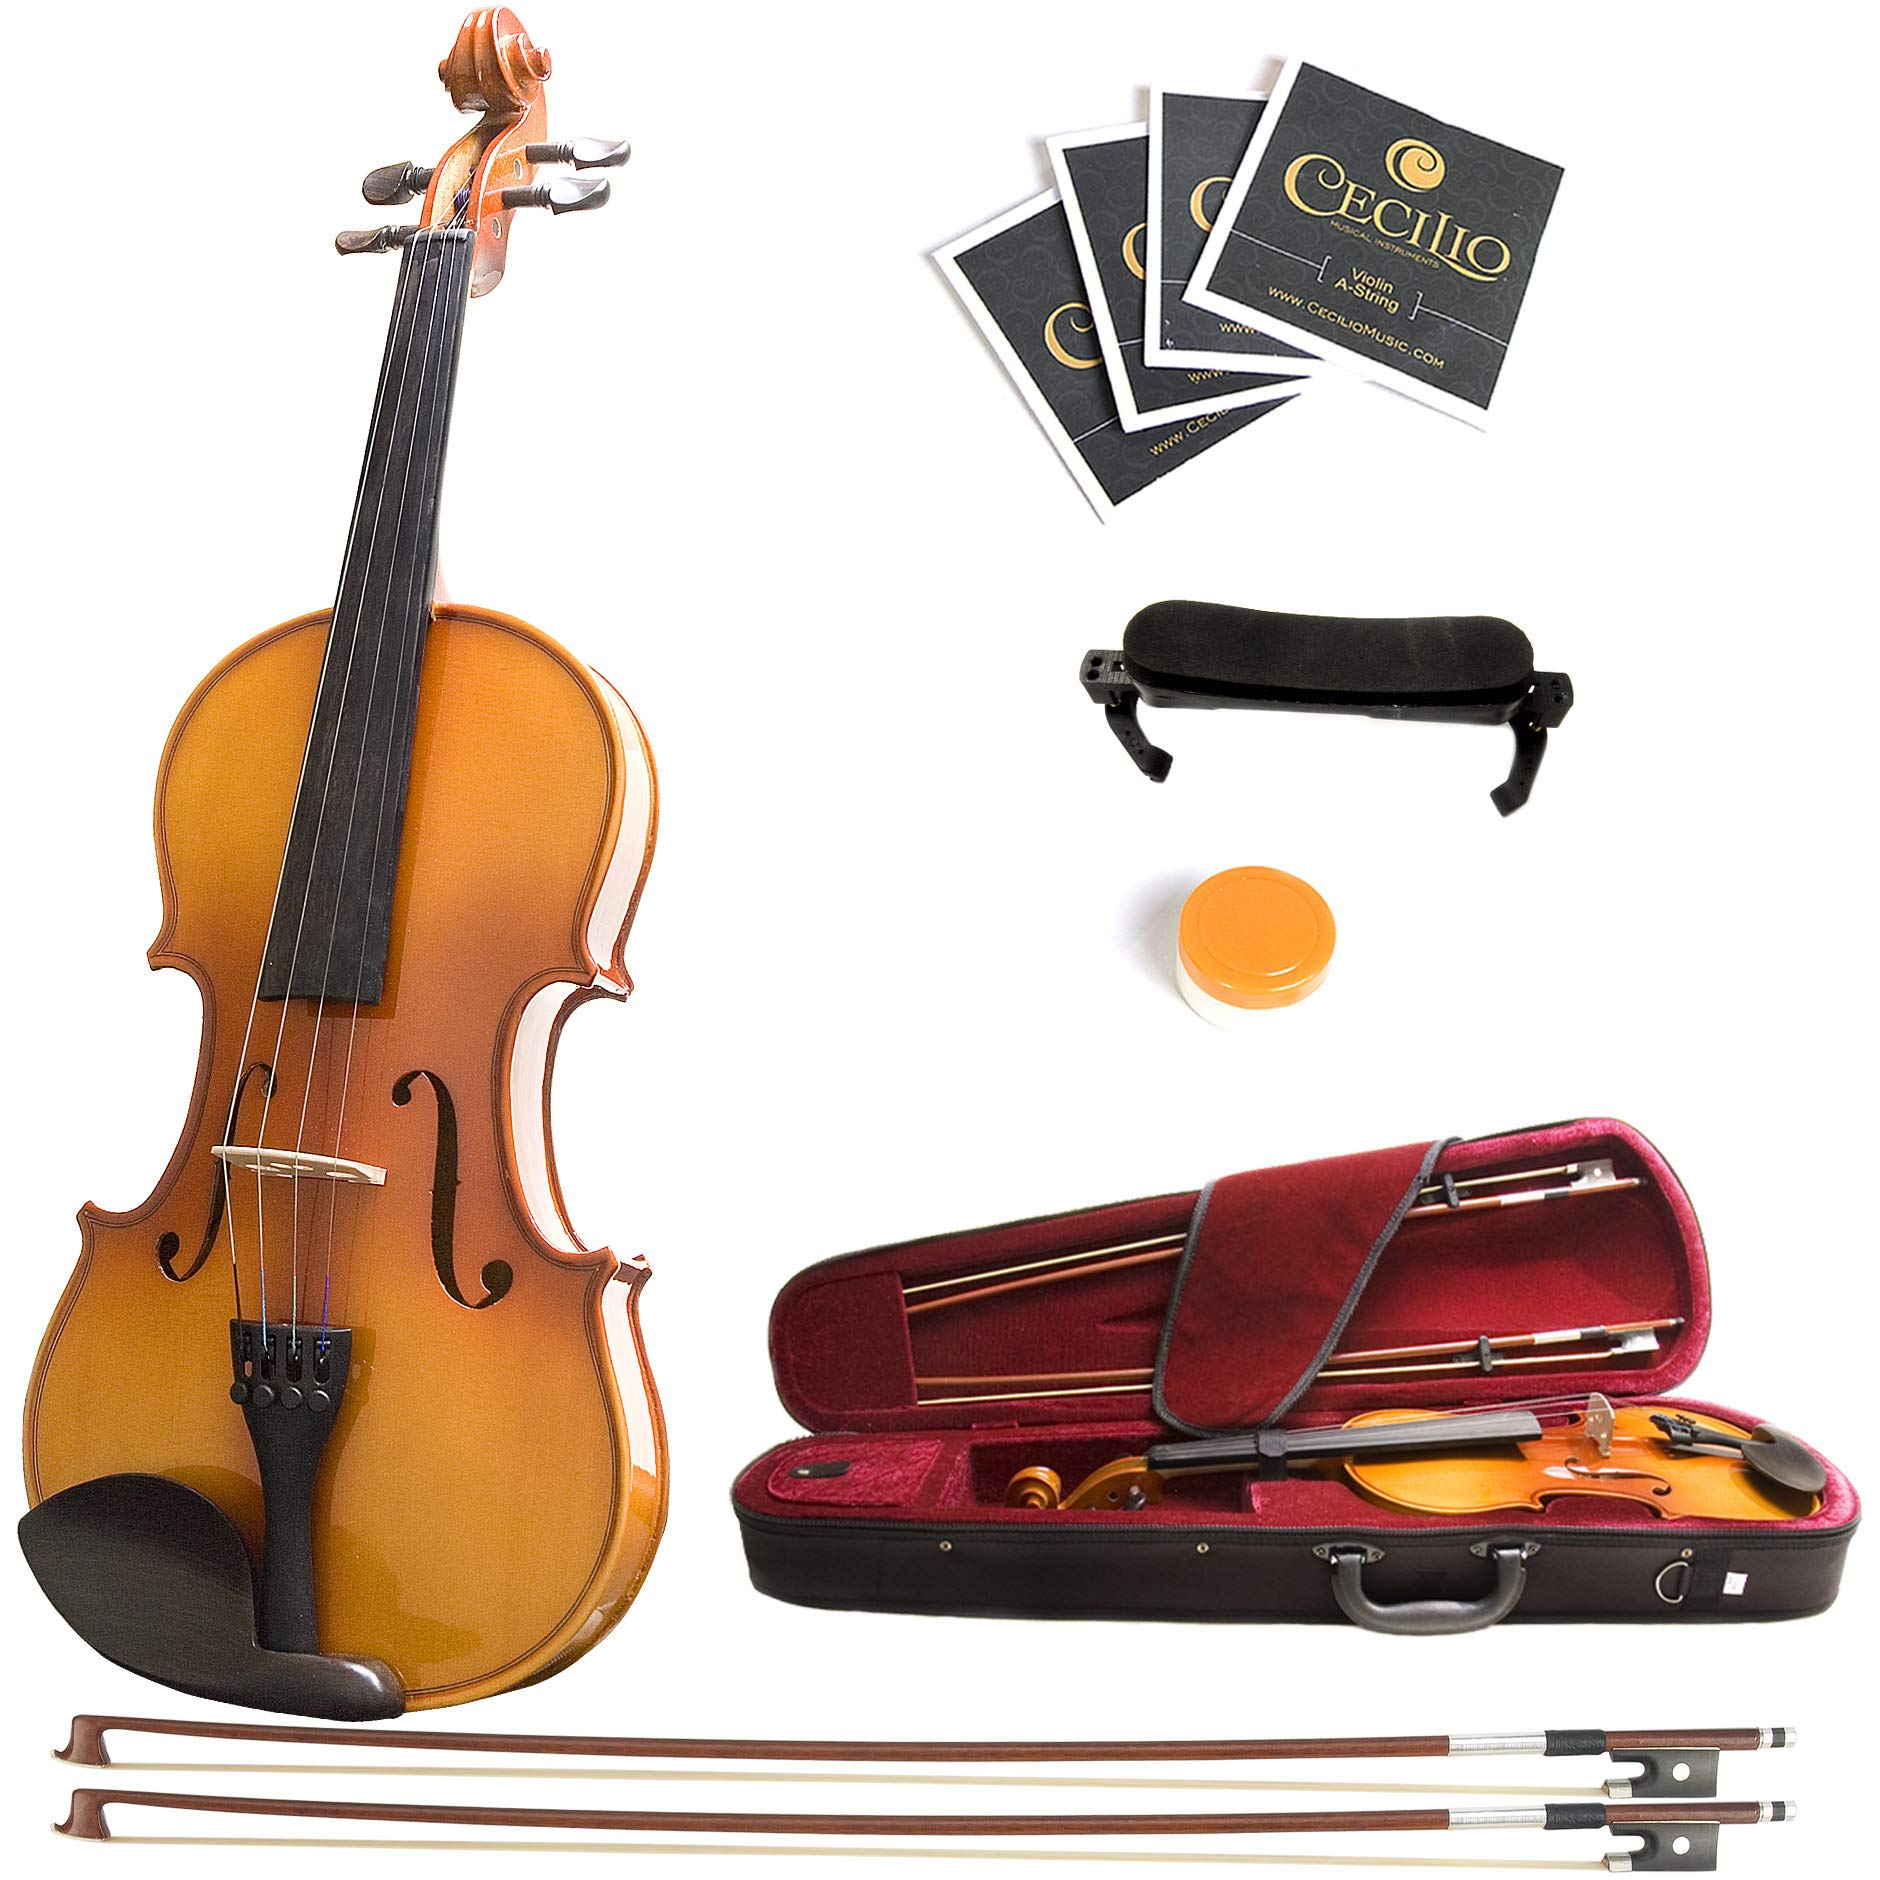 Mendini 4/4 MV400 Ebony Fitted Solid Wood Violin with Hard Case, Shoulder Rest, Bow, Rosin, Extra Bridge and Strings - Full Size by Mendini by Cecilio